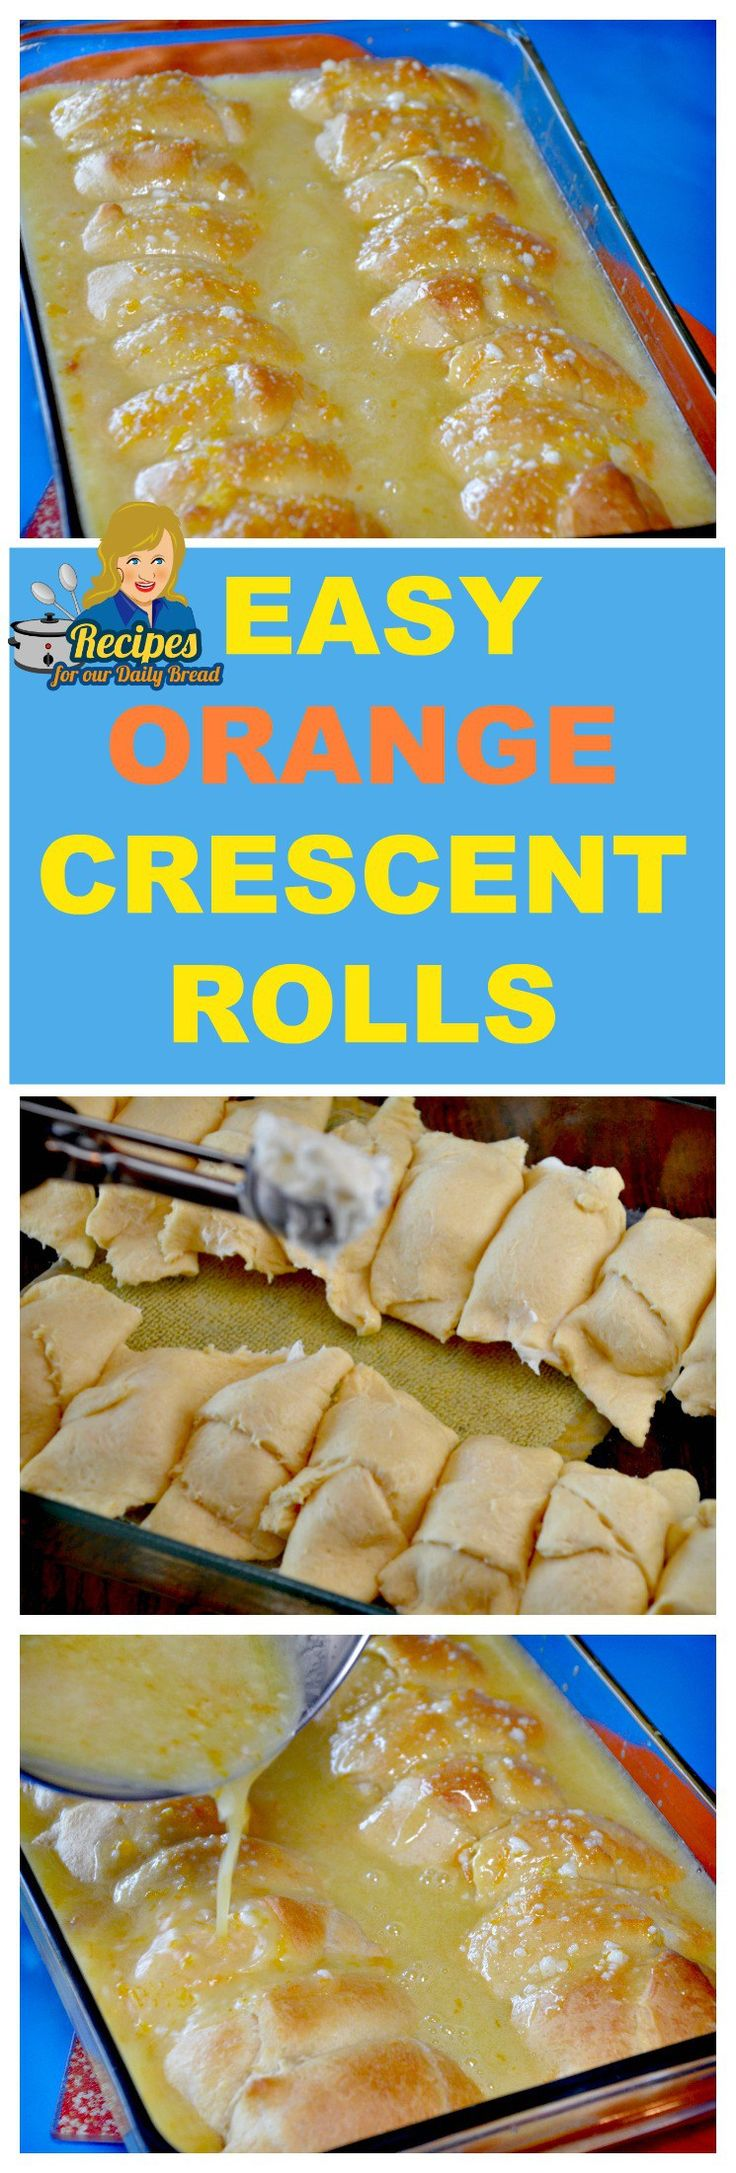 EXTREMELY FLAVORFUL EASY ORANGE CRESCENT ROLLS  Do you like Oranges and recipes made with them?  You will love these sweet Orange Crescent Rolls.  Try this easy recipe here: http://recipesforourdailybread.com/orange-crescent-rolls/